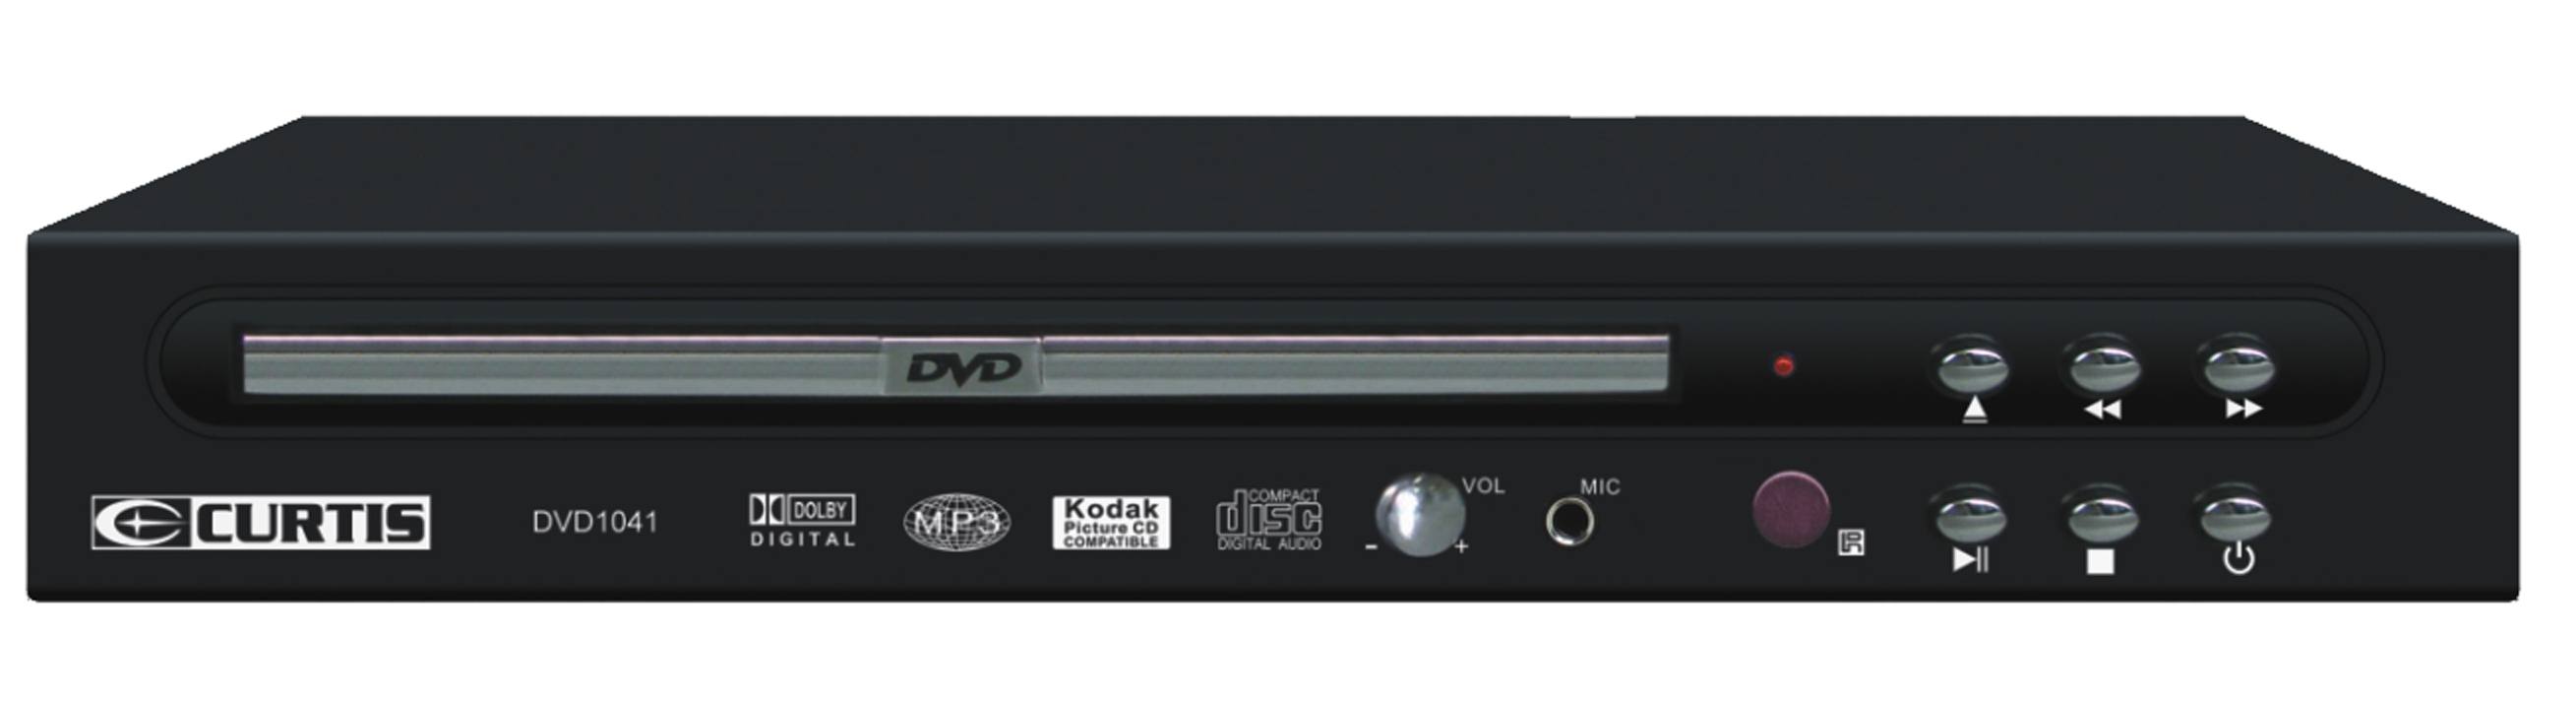 Curtis DVD1041 Compact DVD Player by Sylvania